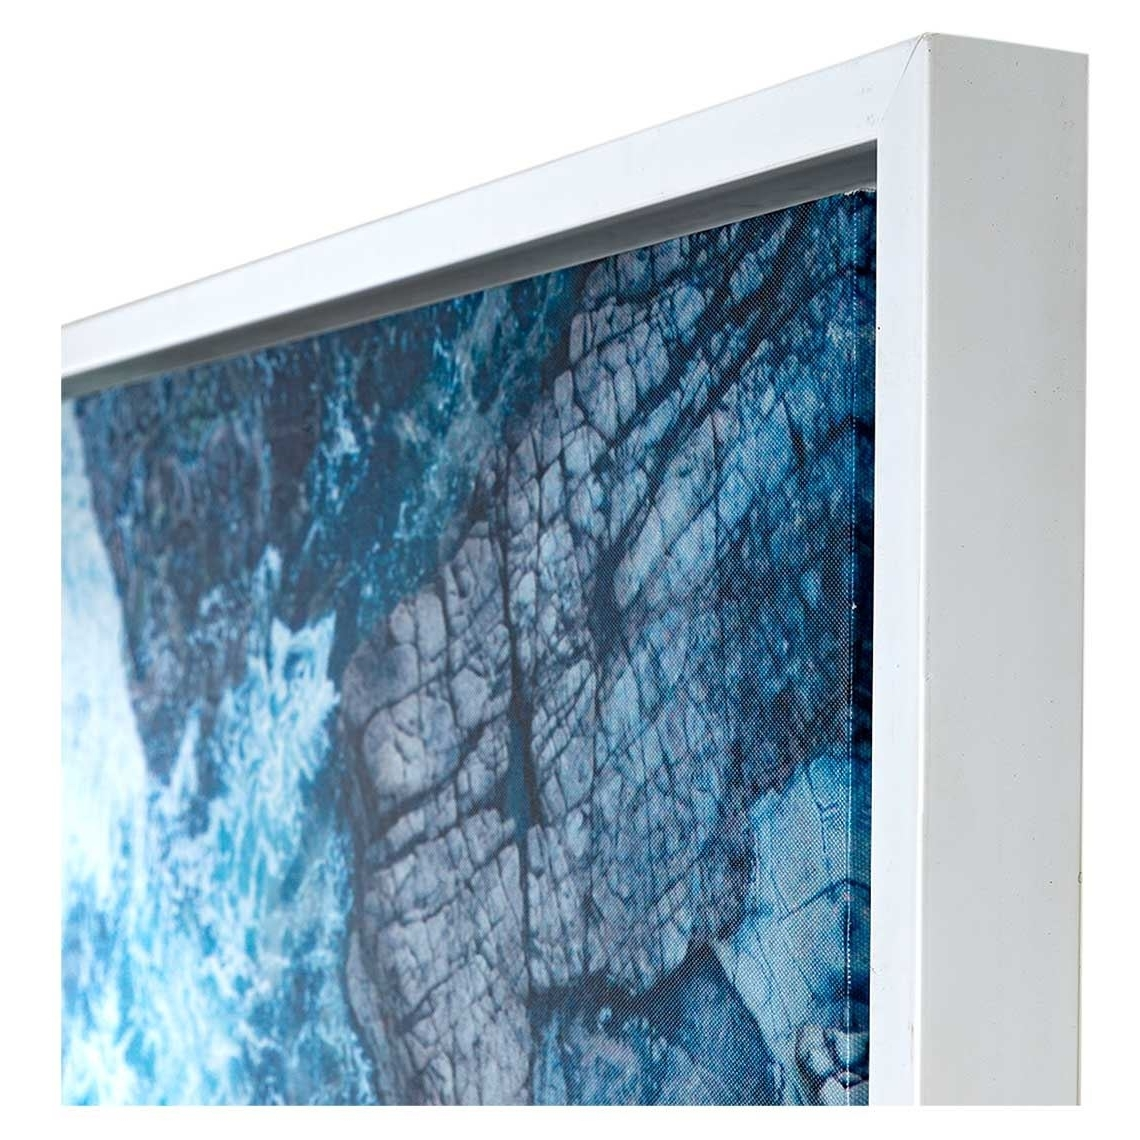 Neeks & Gaston Framed Canvas 120X100Cm Mooloolaba Waves In Trendy Mandurah Canvas Wall Art (Gallery 4 of 15)